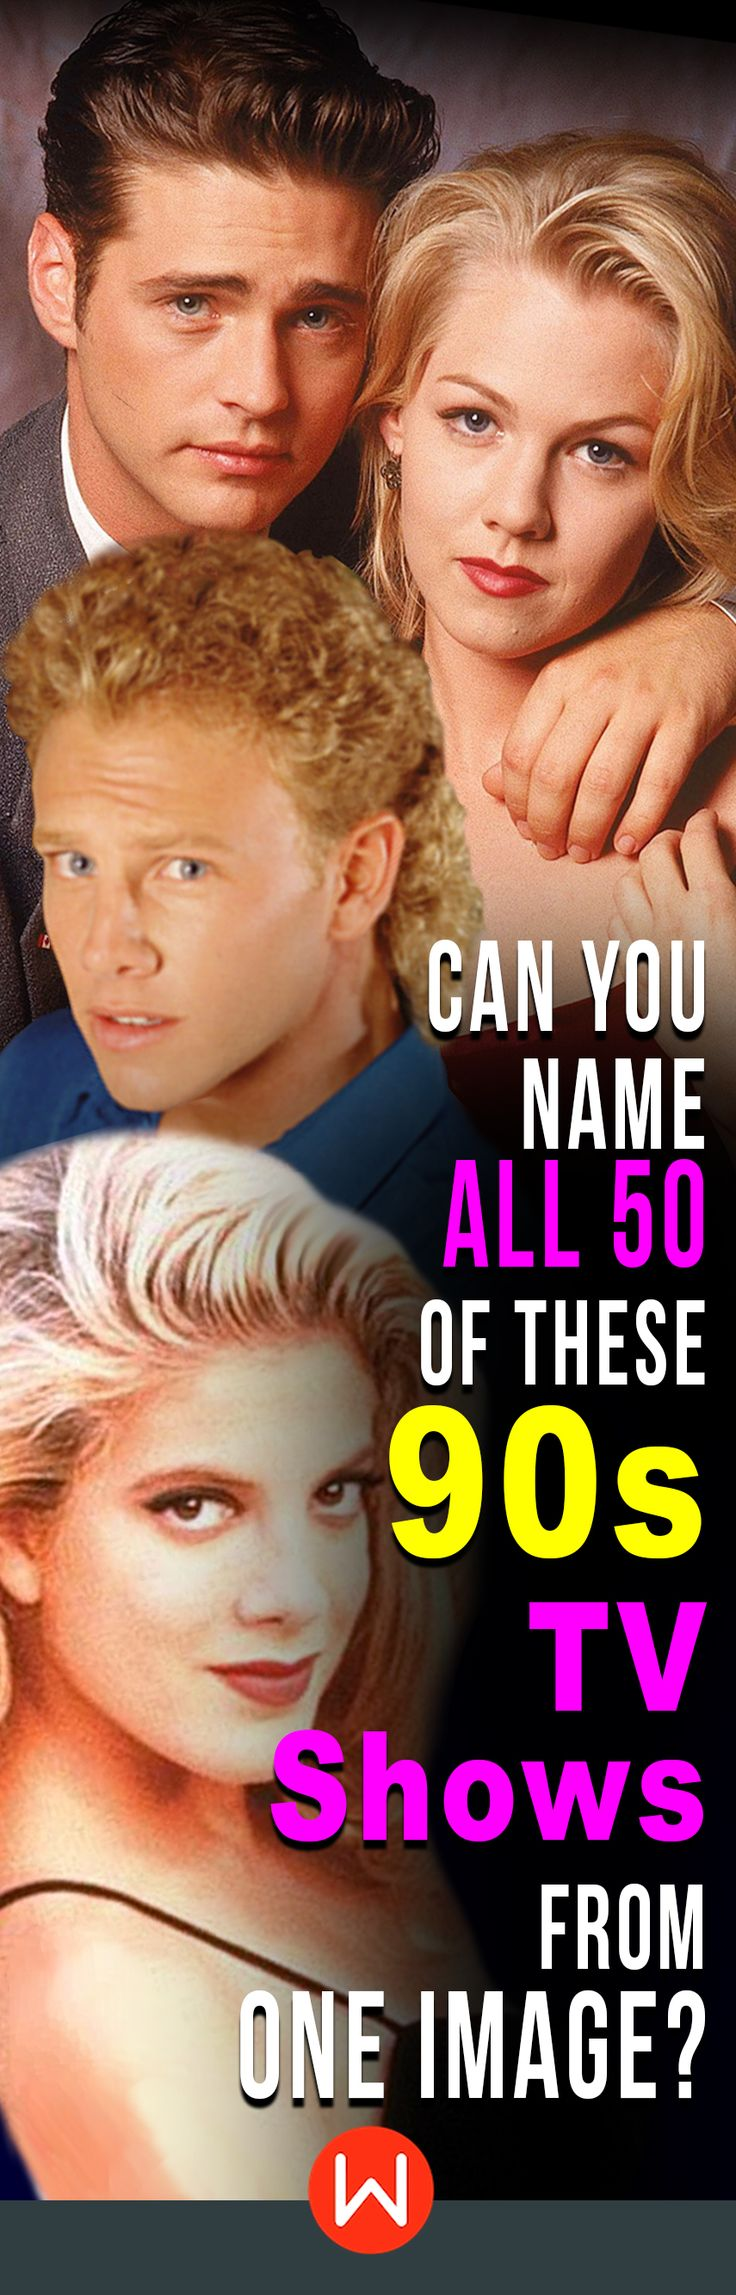 Popular 90s #TVshows quiz! It's the ultimate #flashback Can you name all of these 50 top TV shows from the 90s? 90s pop culture quiz, #90strivia Beverly Hills 90210. Donna Martin,  #AmericanTvshows #1990s. #quiz  #beverlyhills #moviequiz #moviegame #90s